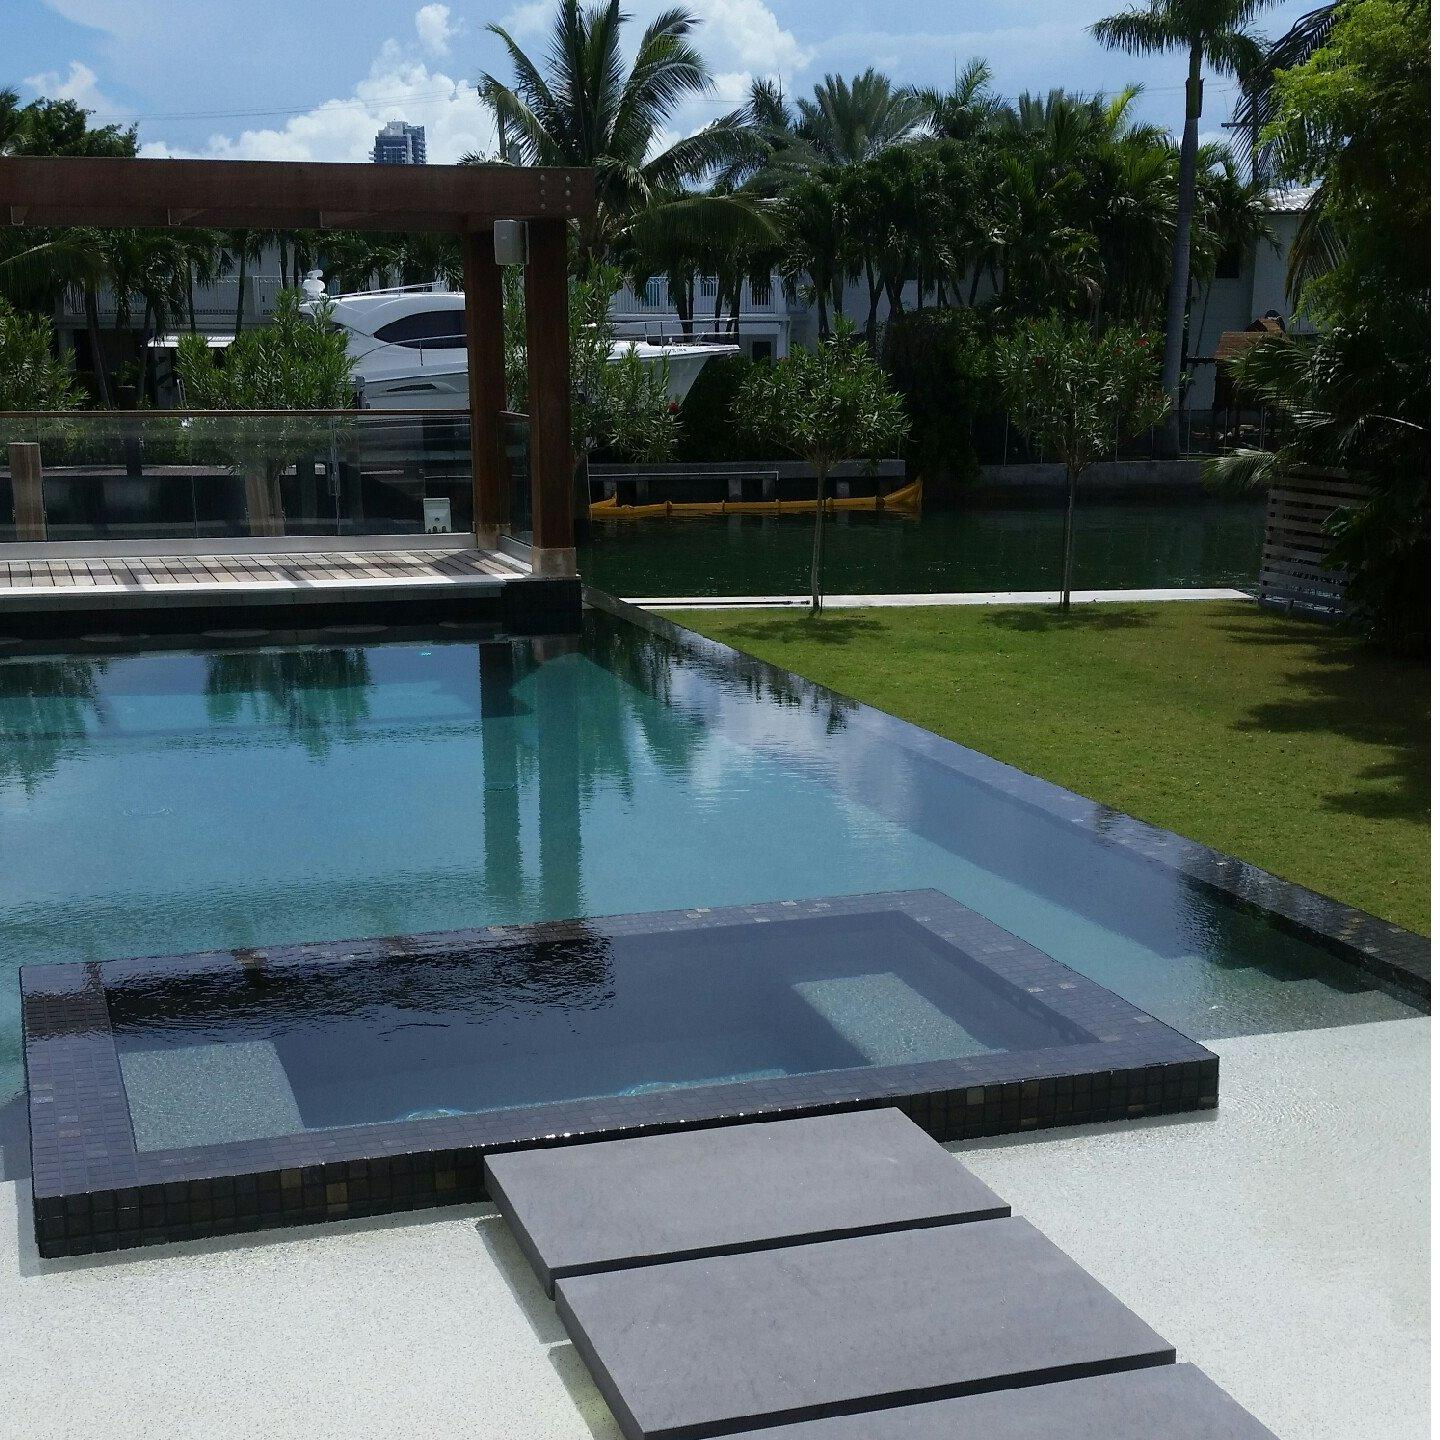 Swimming pool contractors near me in palm beach florida for Local swimming pool companies